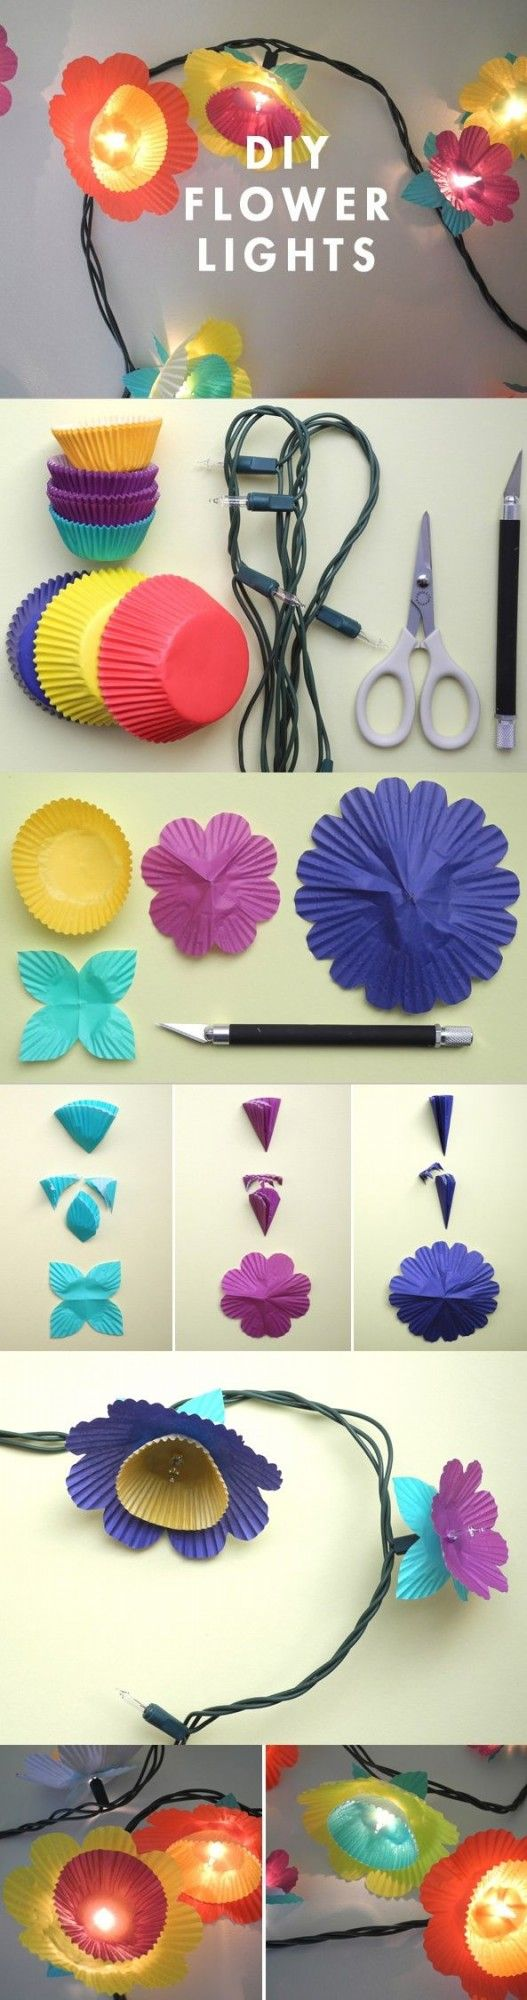 23 cute and simple diy home crafts tutorials flower lights simple diy flower light flowers diy crafts home made easy crafts craft idea crafts ideas diy ideas diy crafts diy idea do it yourself diy projects diy craft solutioingenieria Image collections